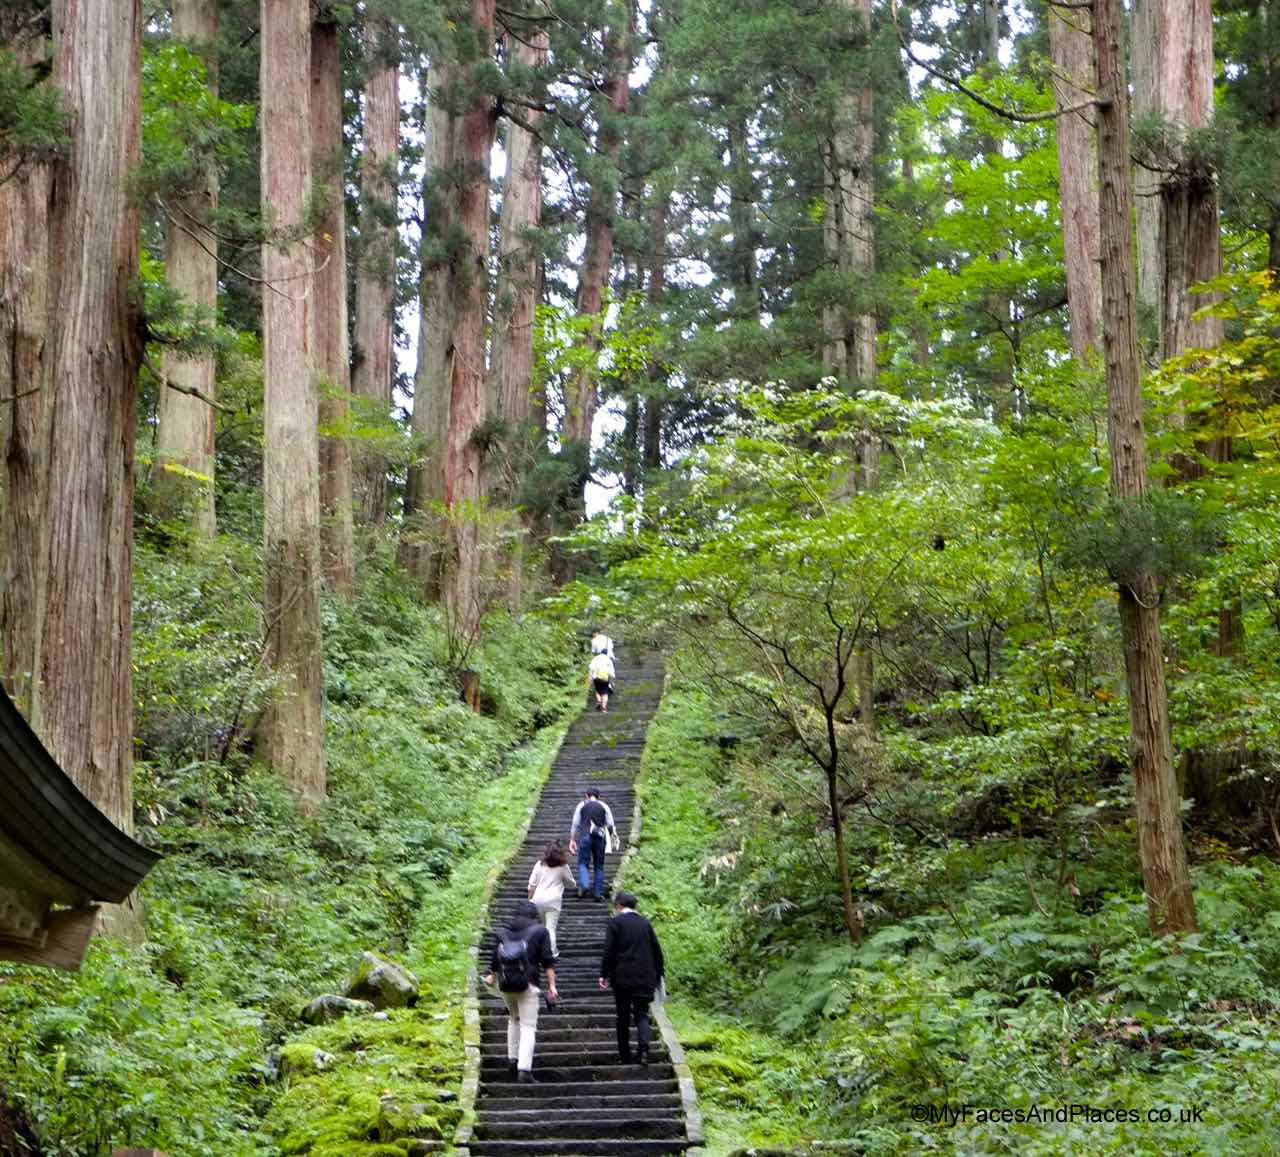 Japan - The 2,446 Ishi-Dan stone steps to the Sanjin Gosaiden temple on the summit of Mt Haguro